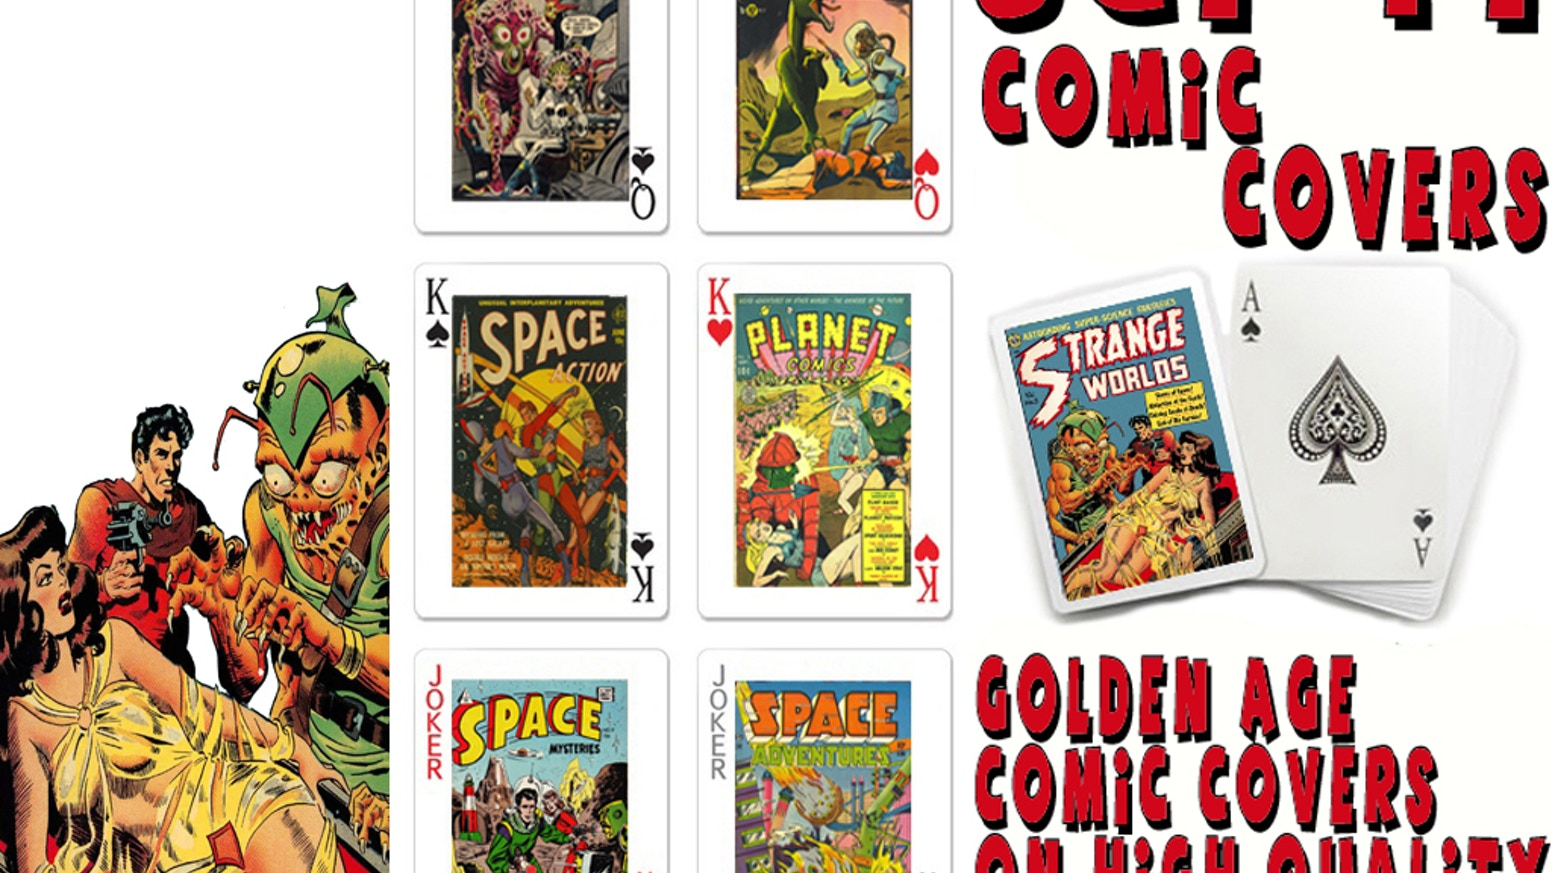 We are bringing classic golden sci-fi comic book graphics to high quality playing cards.